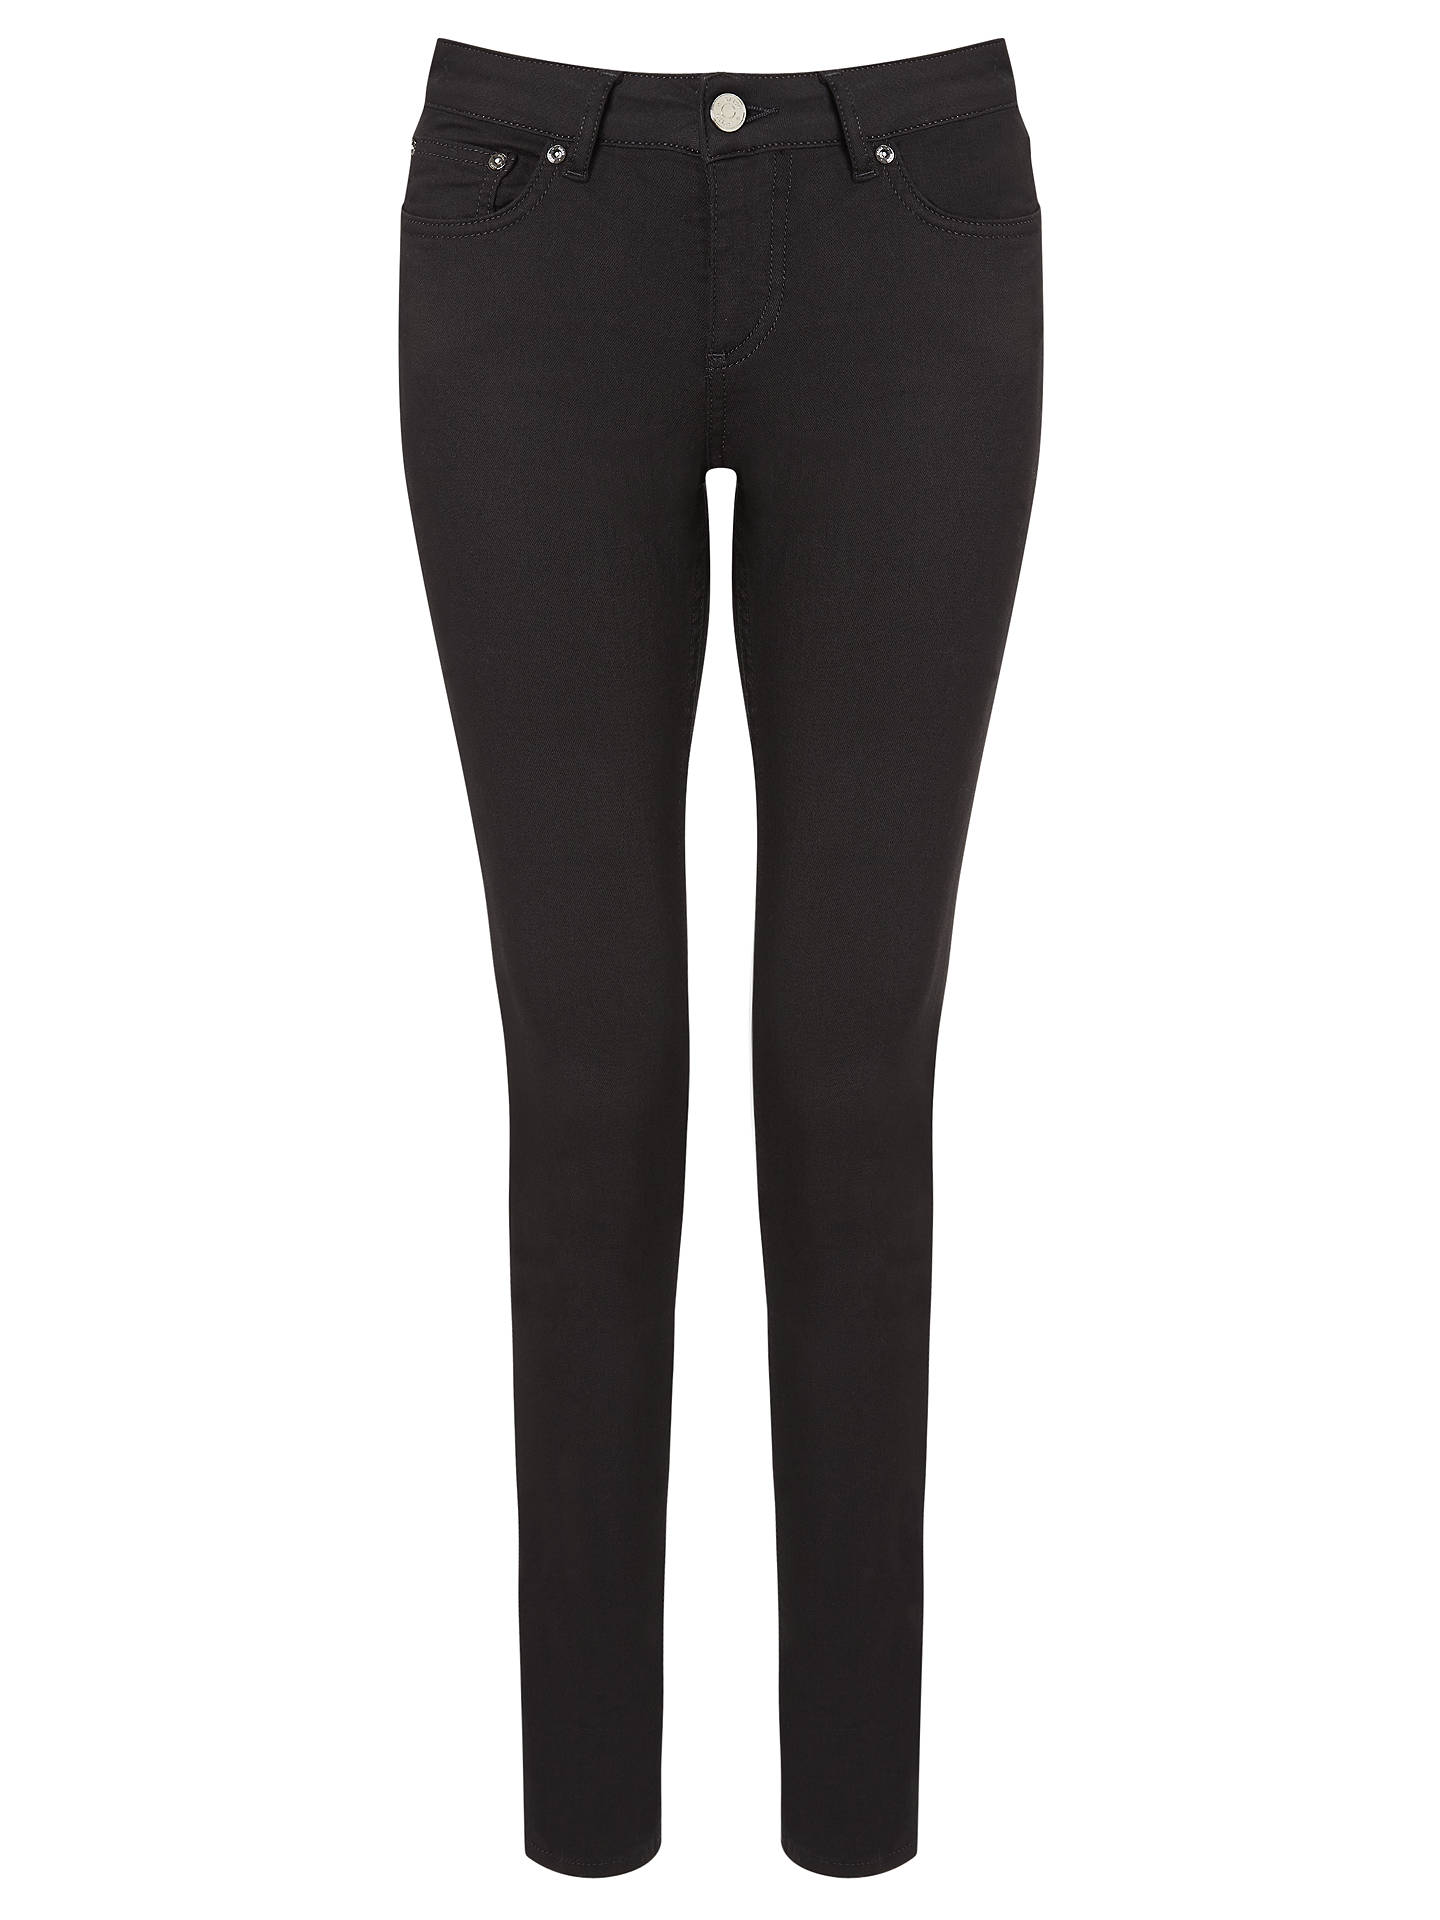 Buy Reiss Stevie Low Rise Skinny Jeans, Black, 24 Online at johnlewis.com